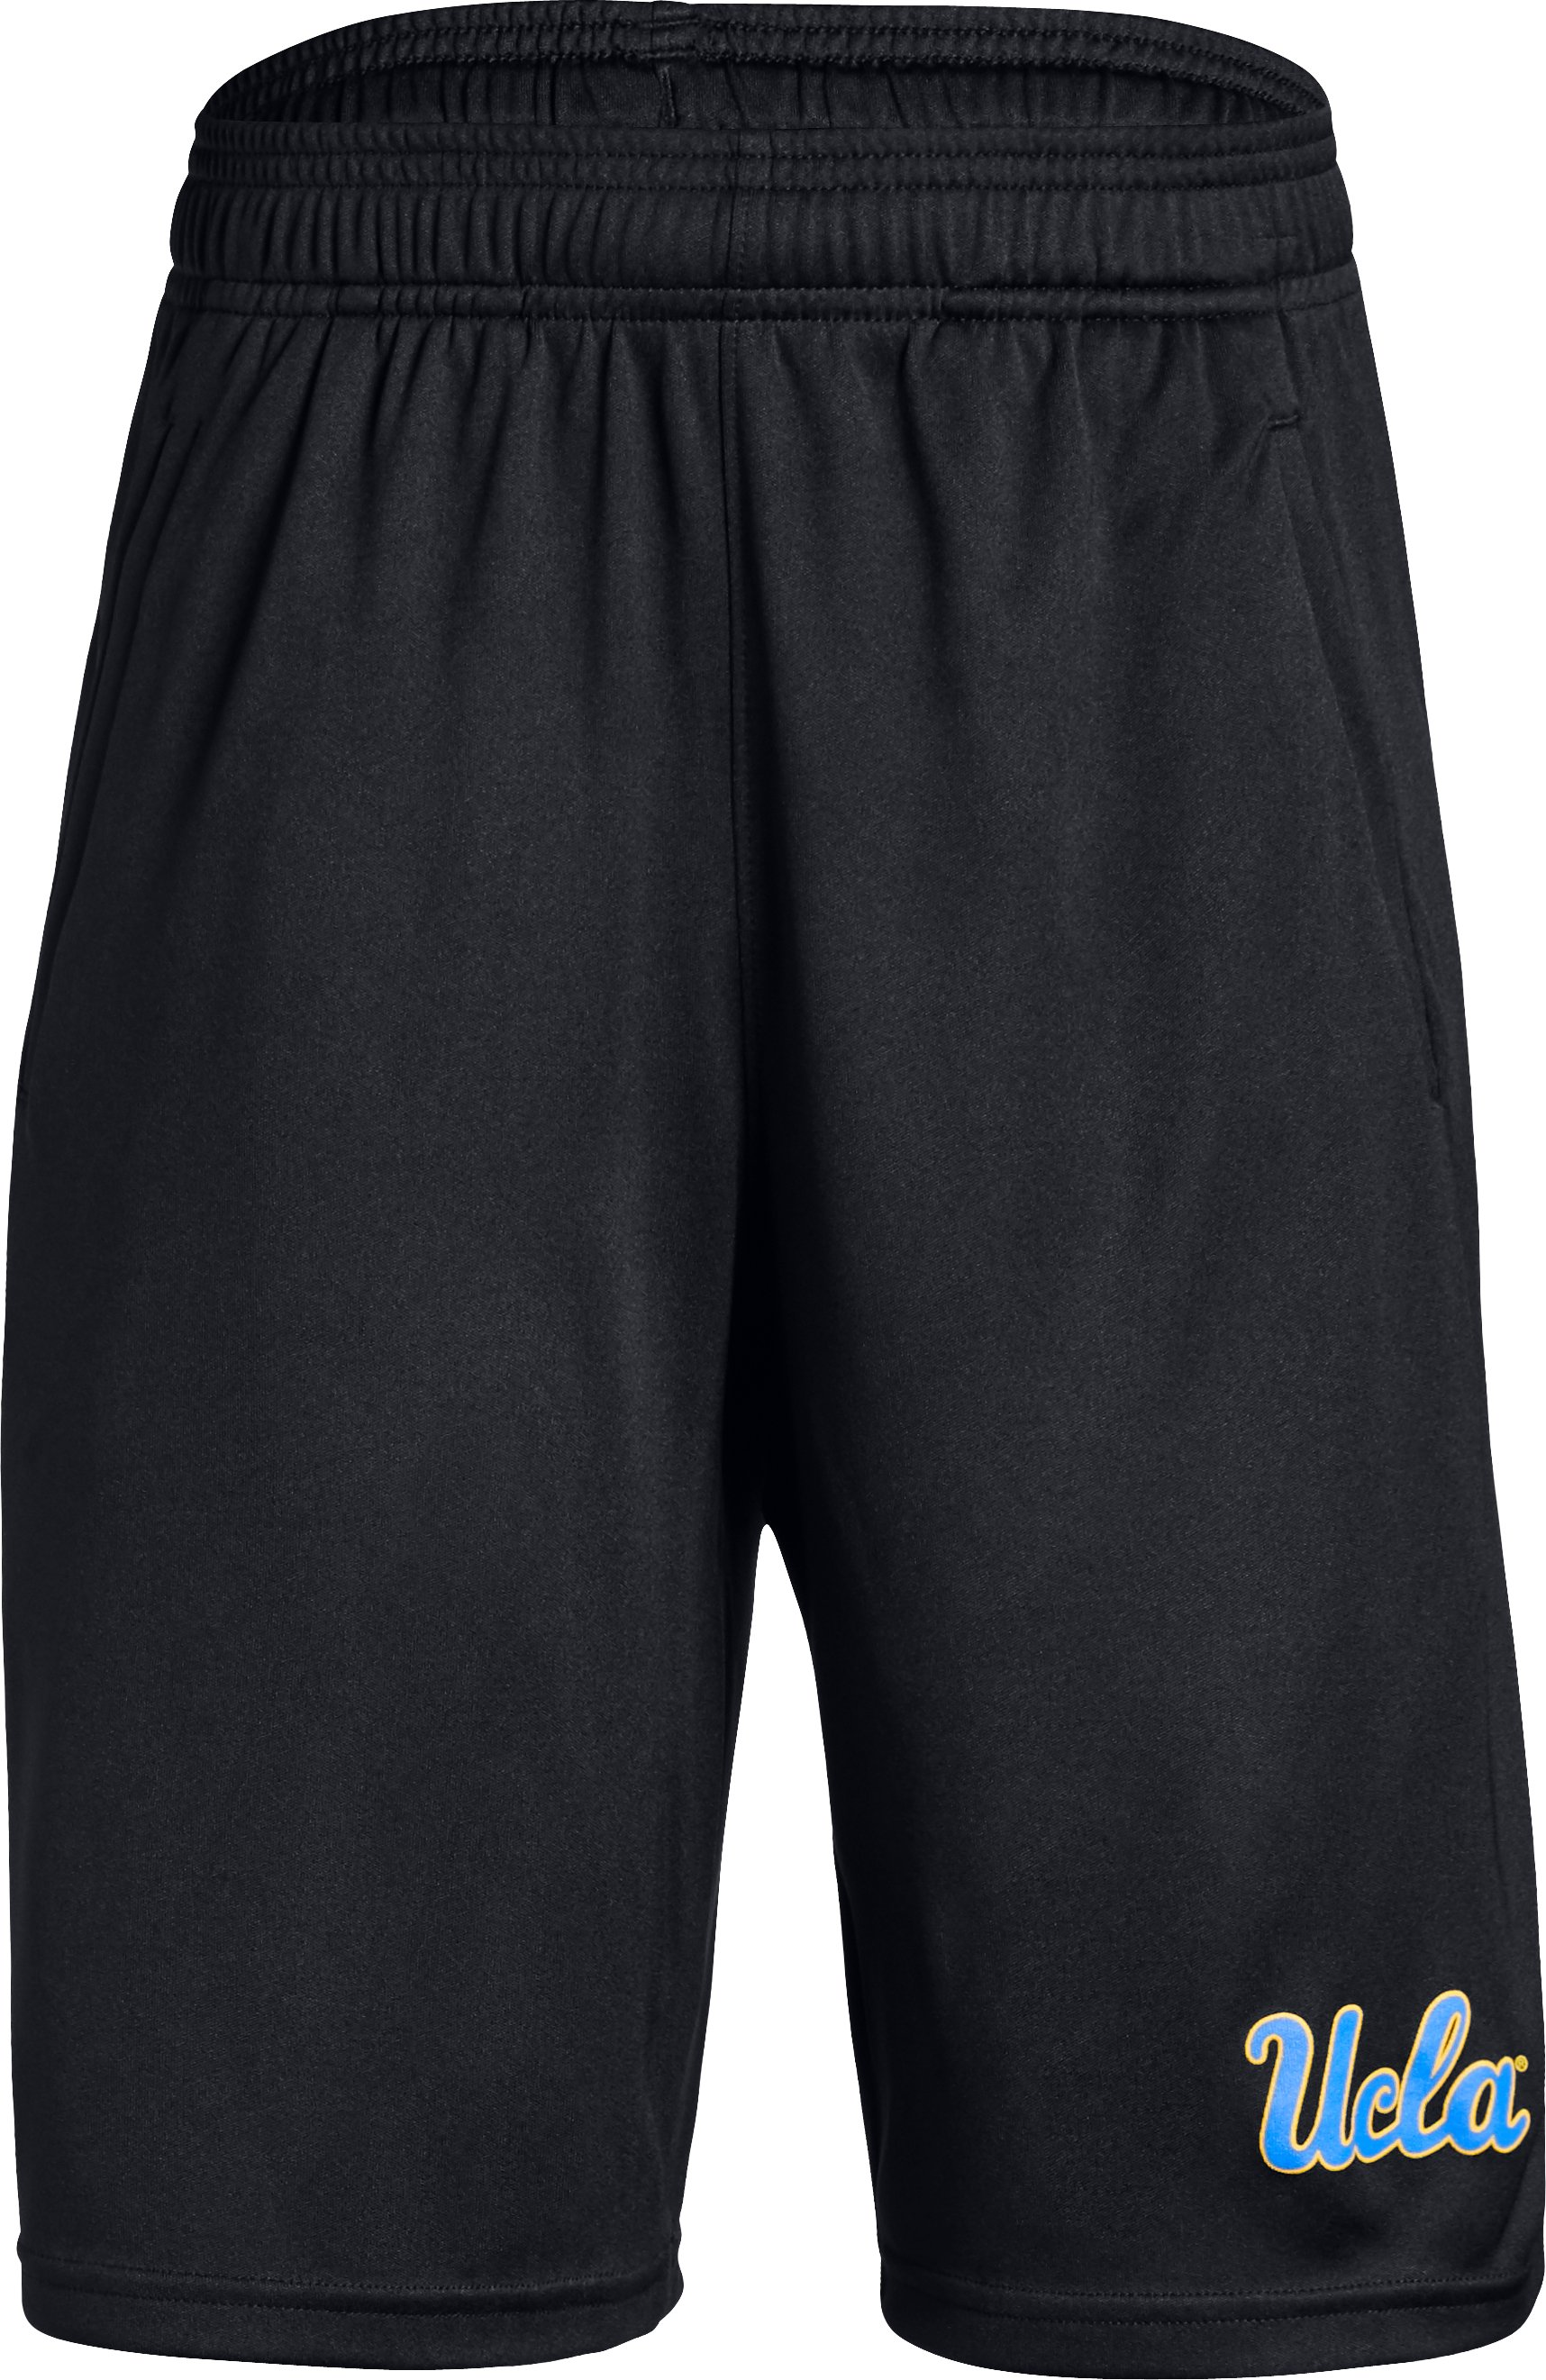 Boys' UA Intimidator Collegiate Shorts, Black , zoomed